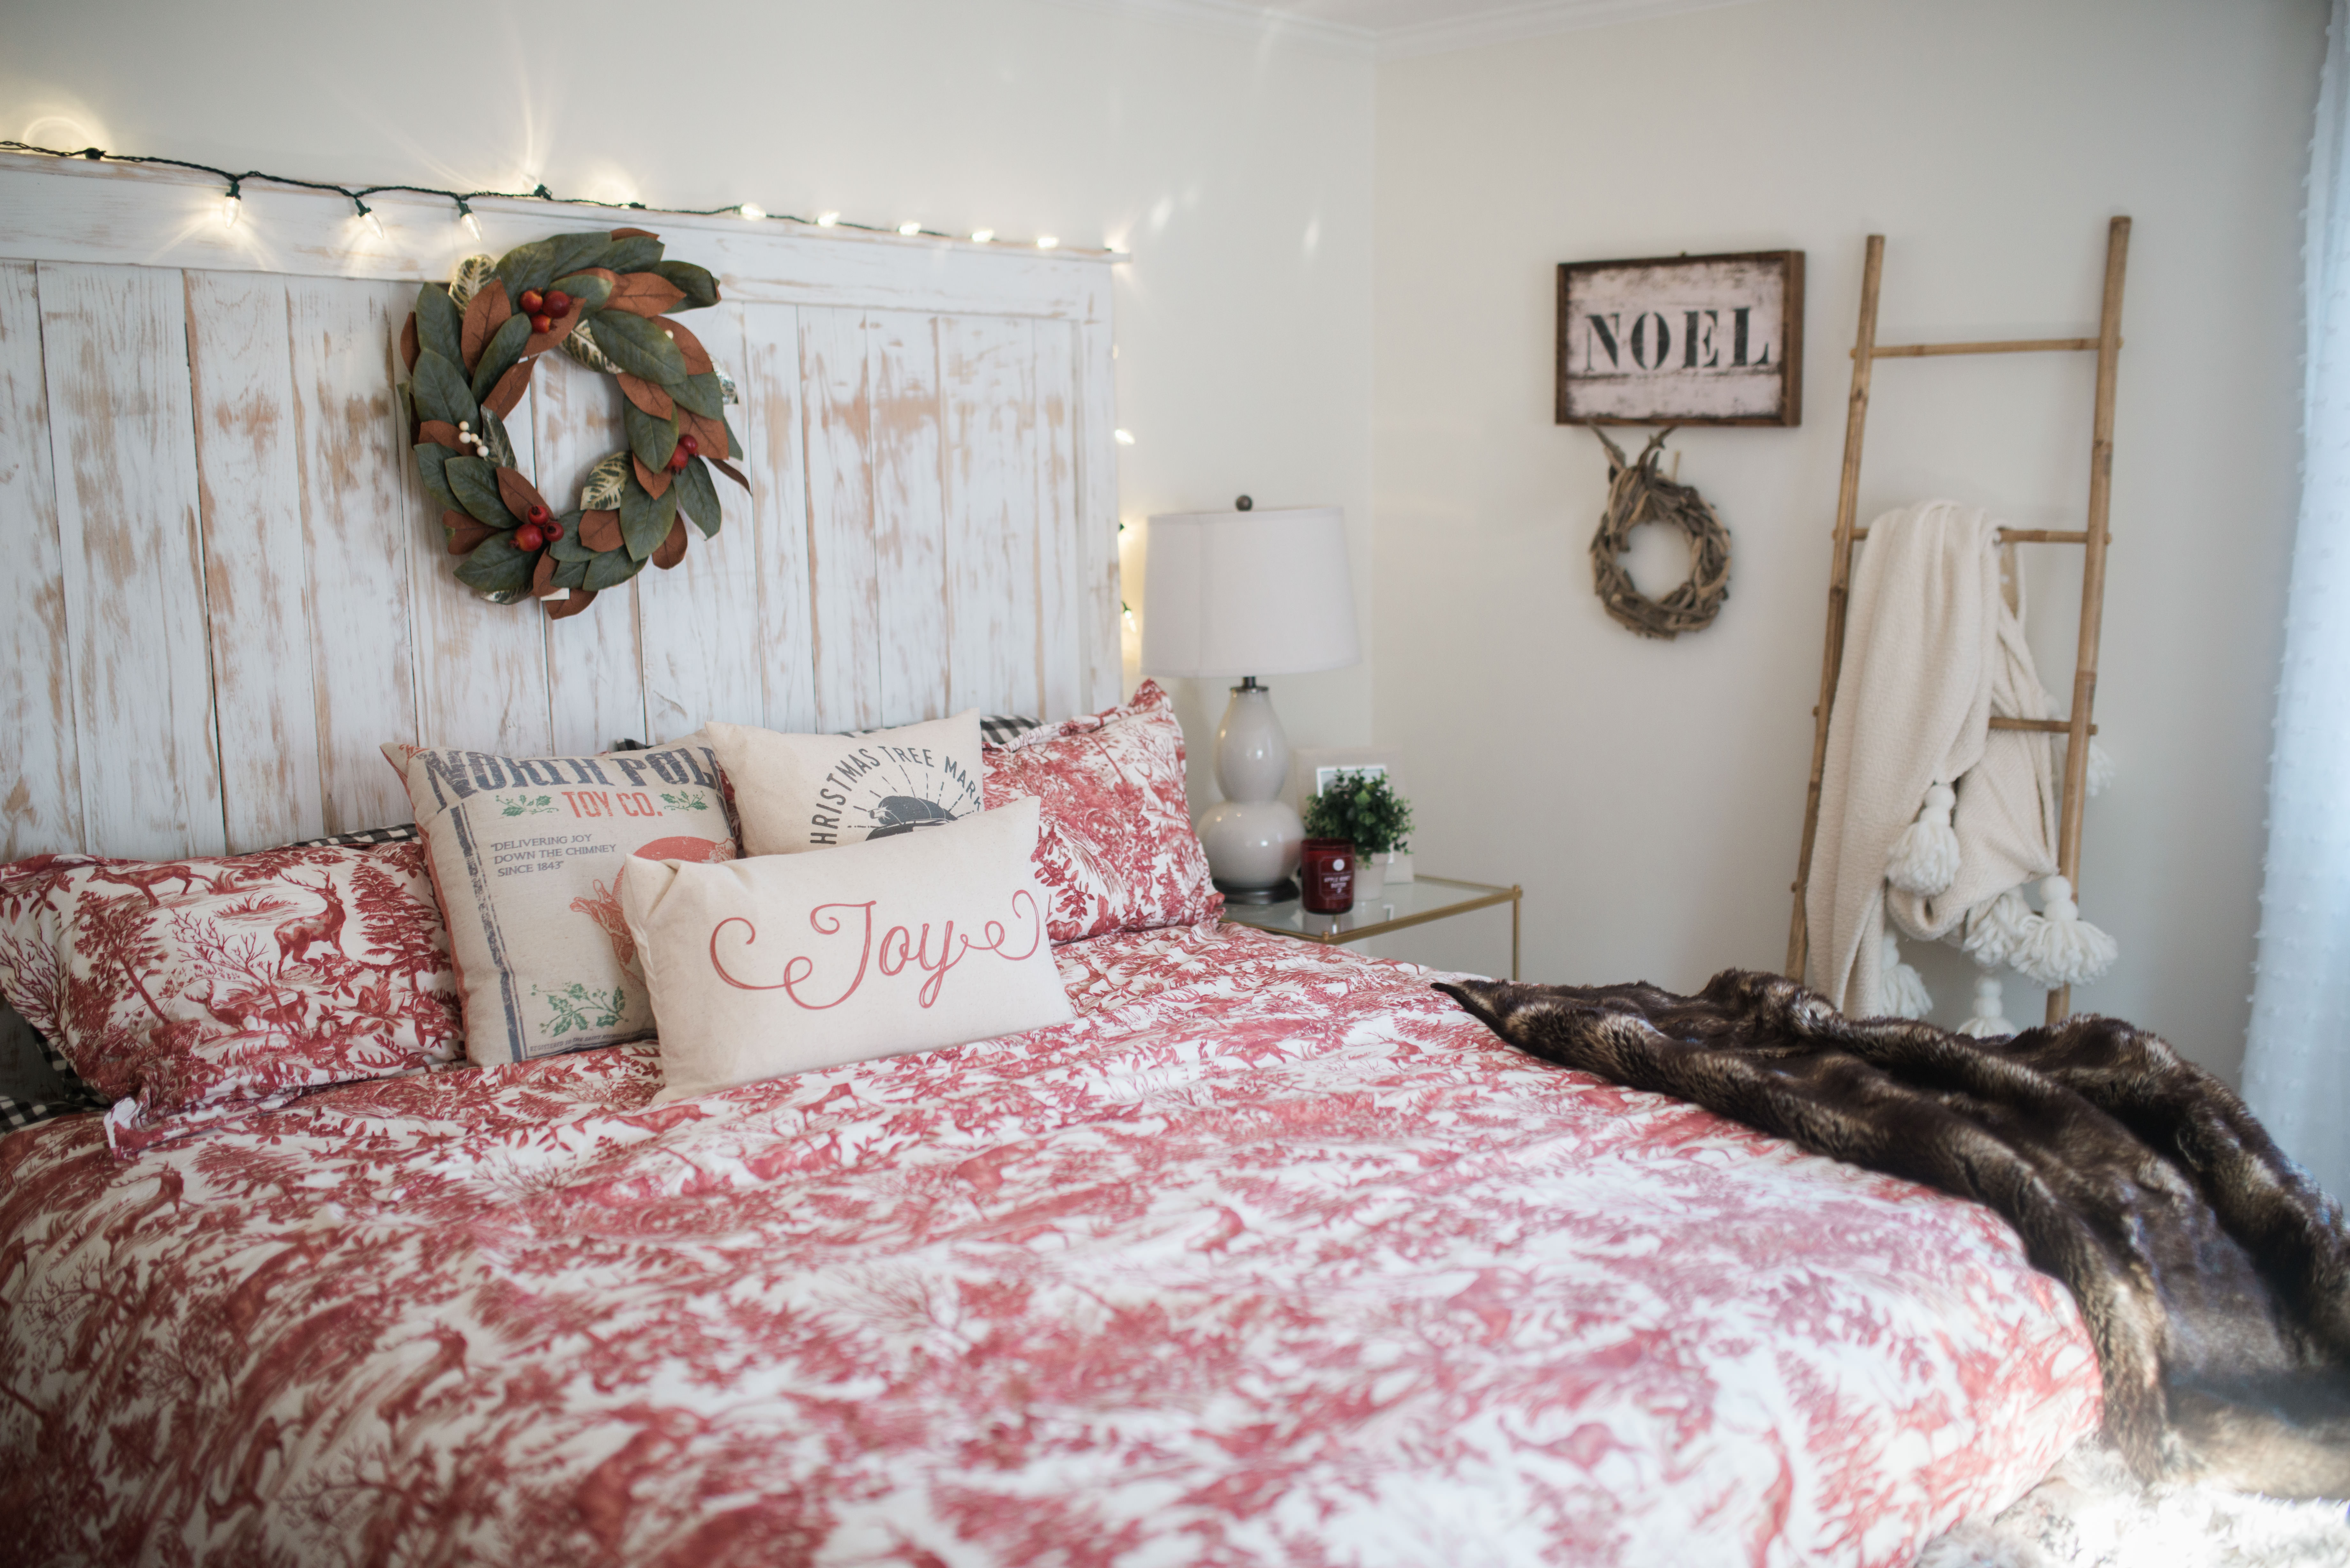 Our Bedroom holiday decor // Bedroom Wall Decorations on Room Decoration  id=78393